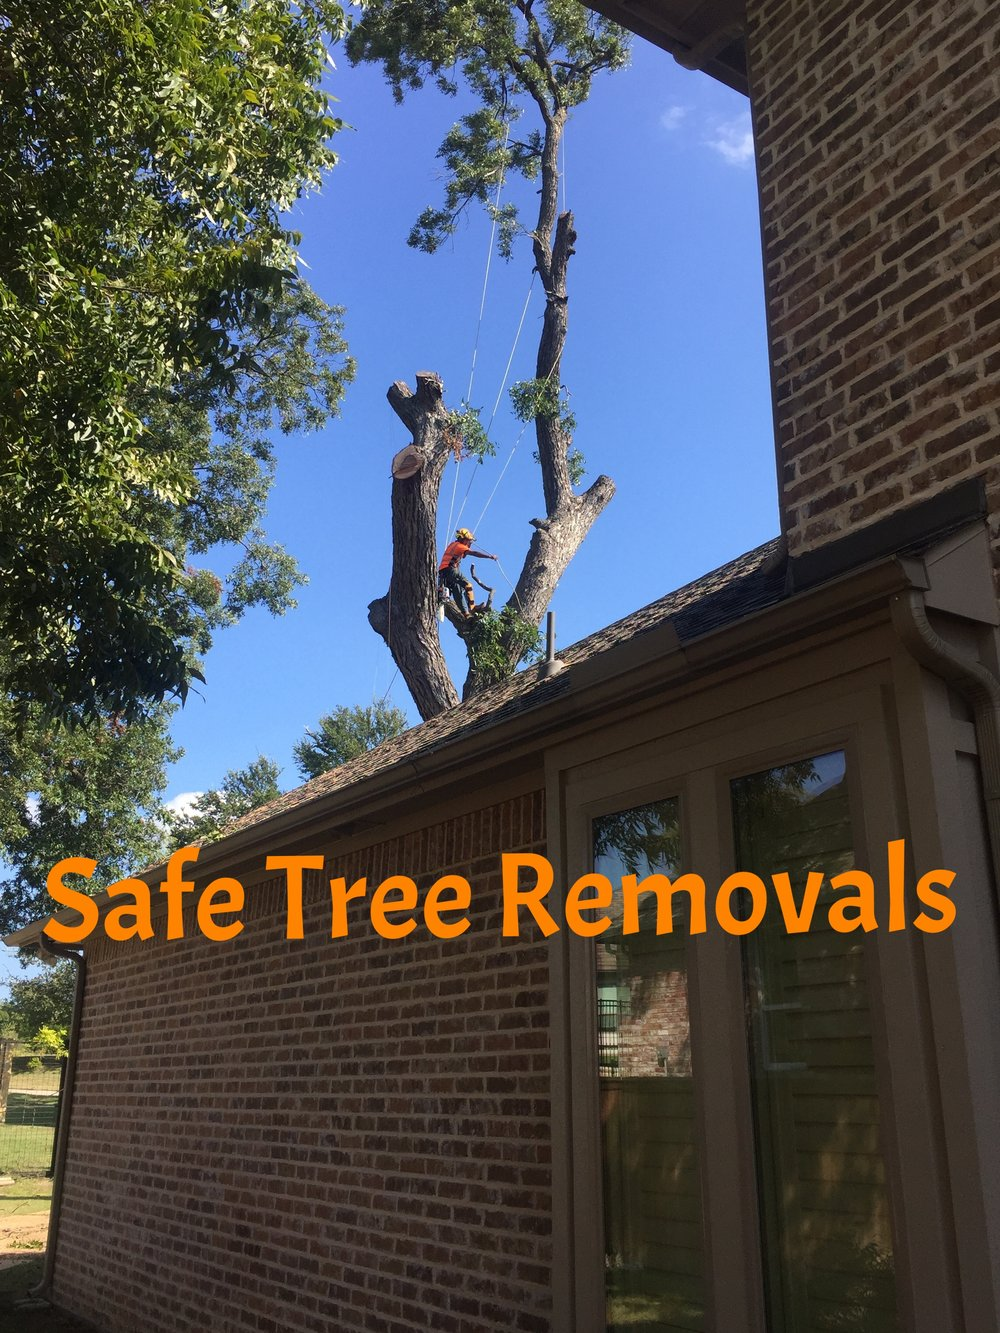 Safe Tree Removals